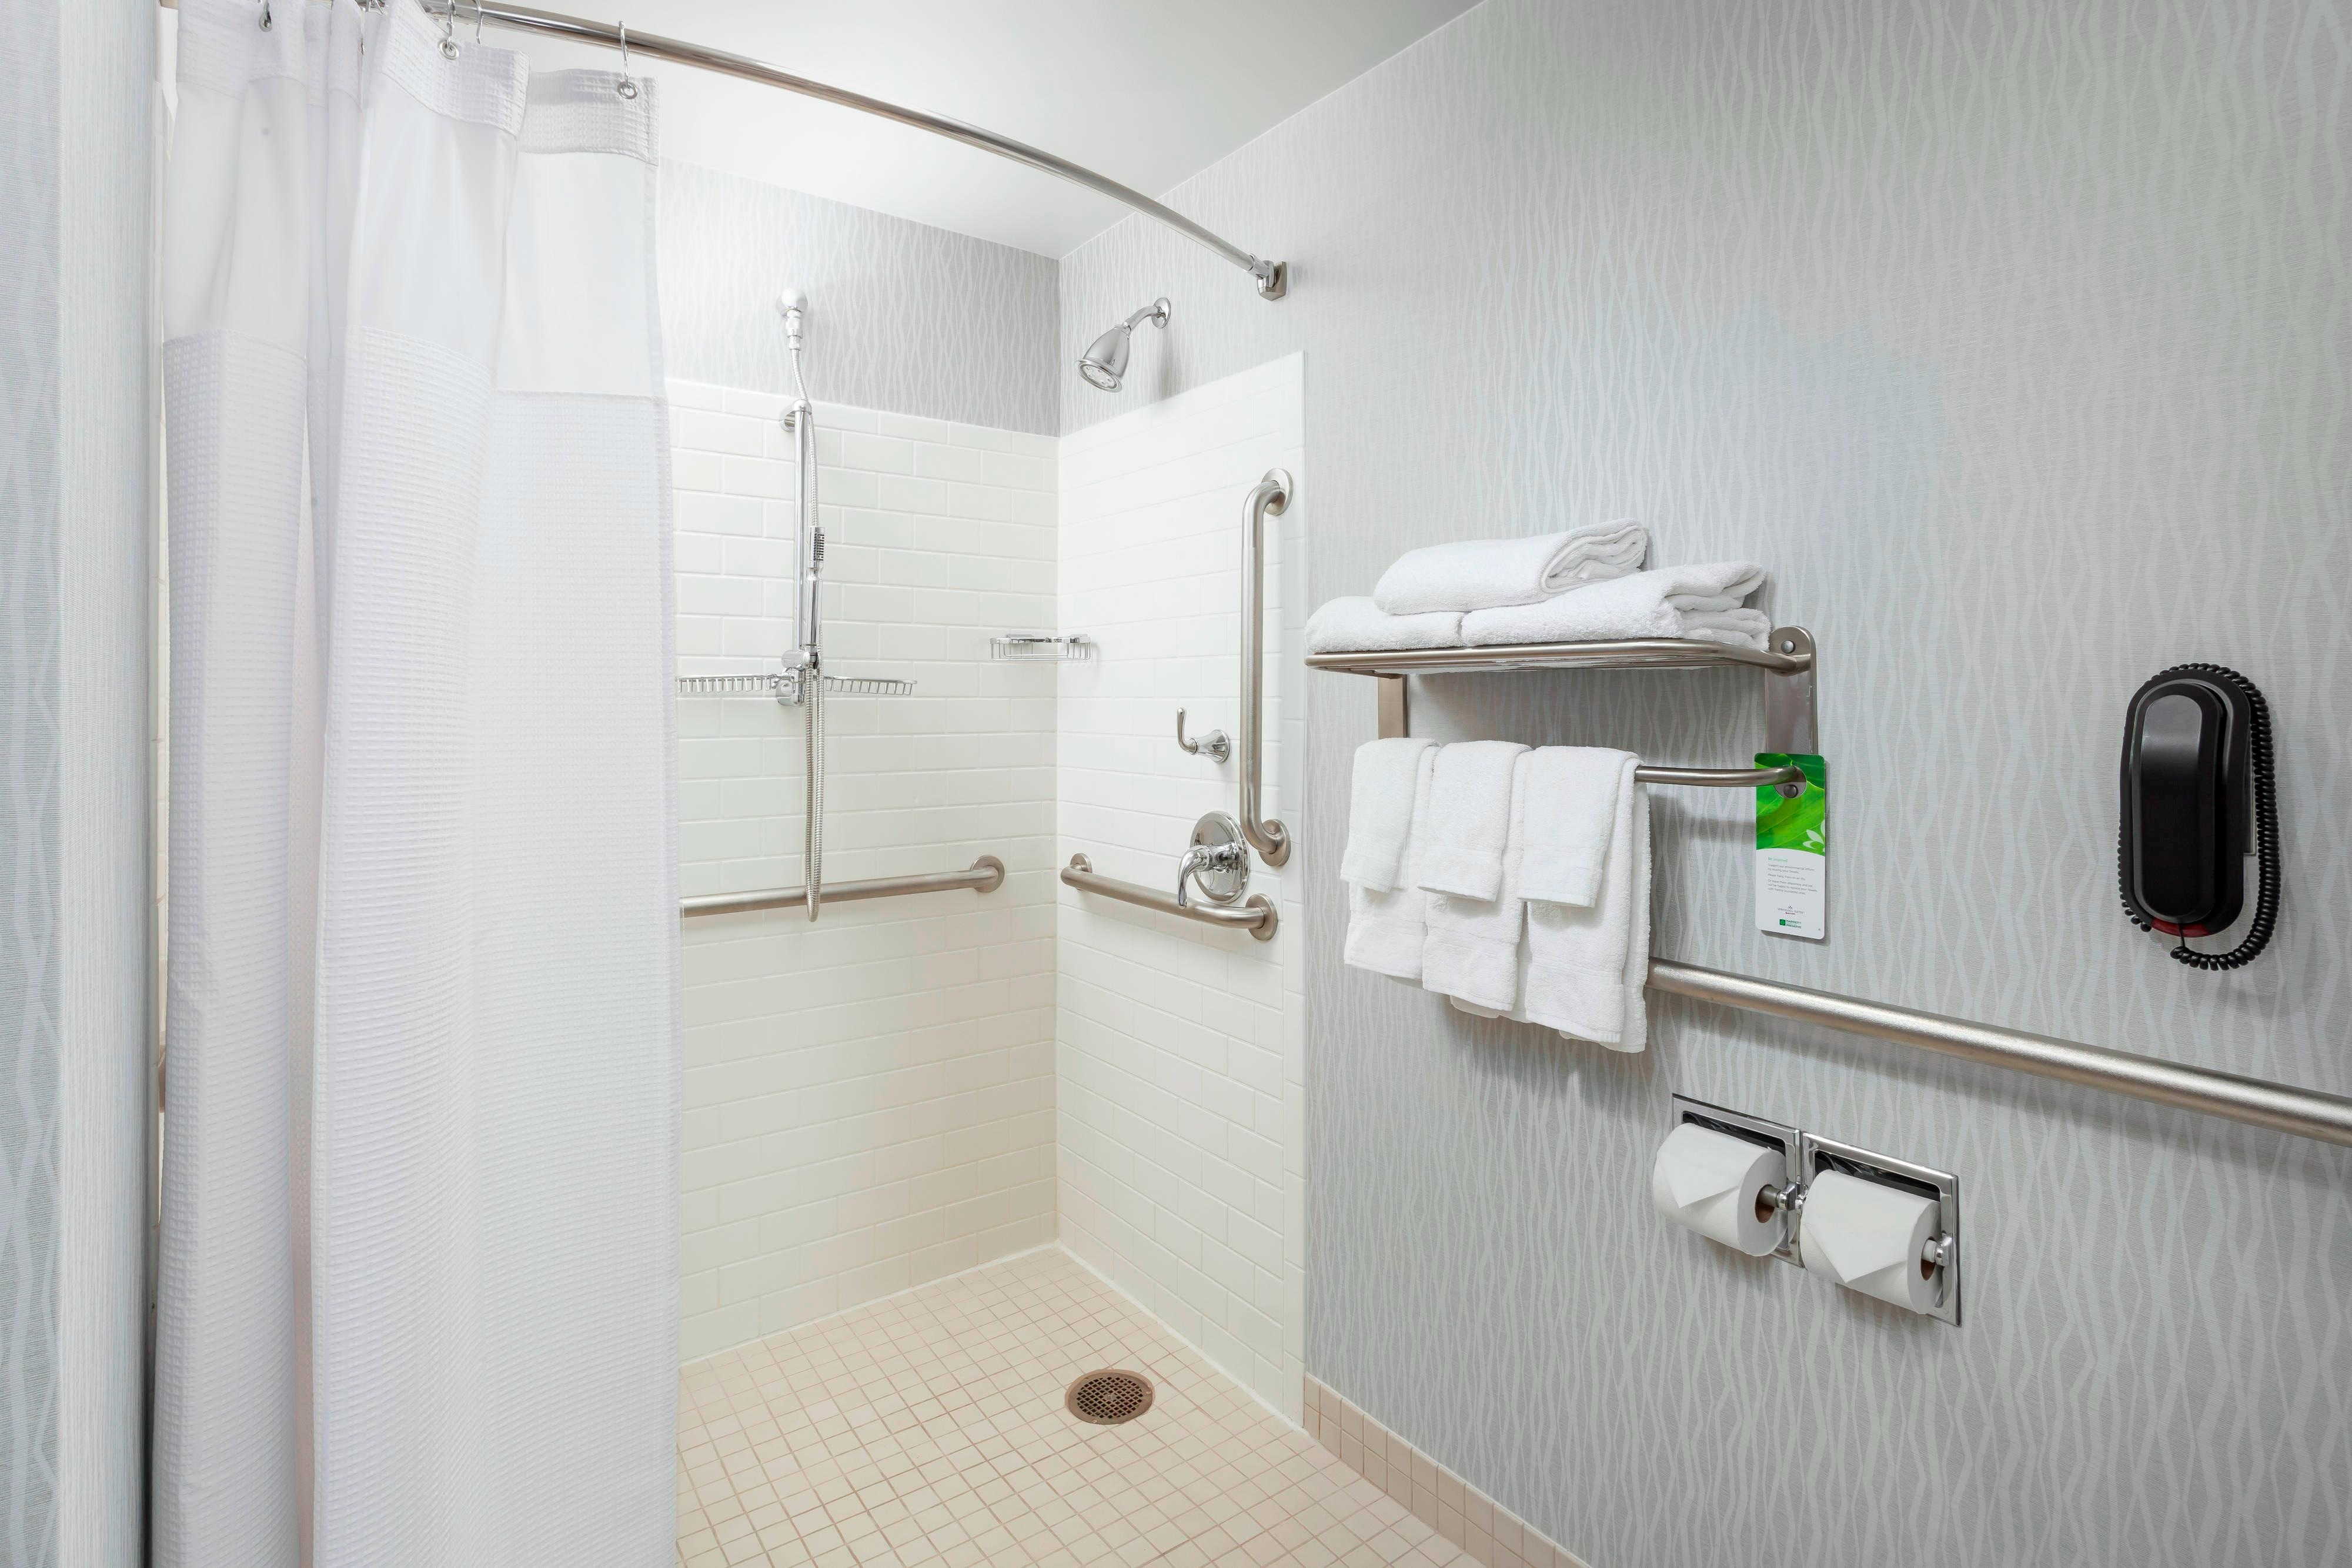 SpringHill Suites Chicago Downtown Accessible Roll-in Shower